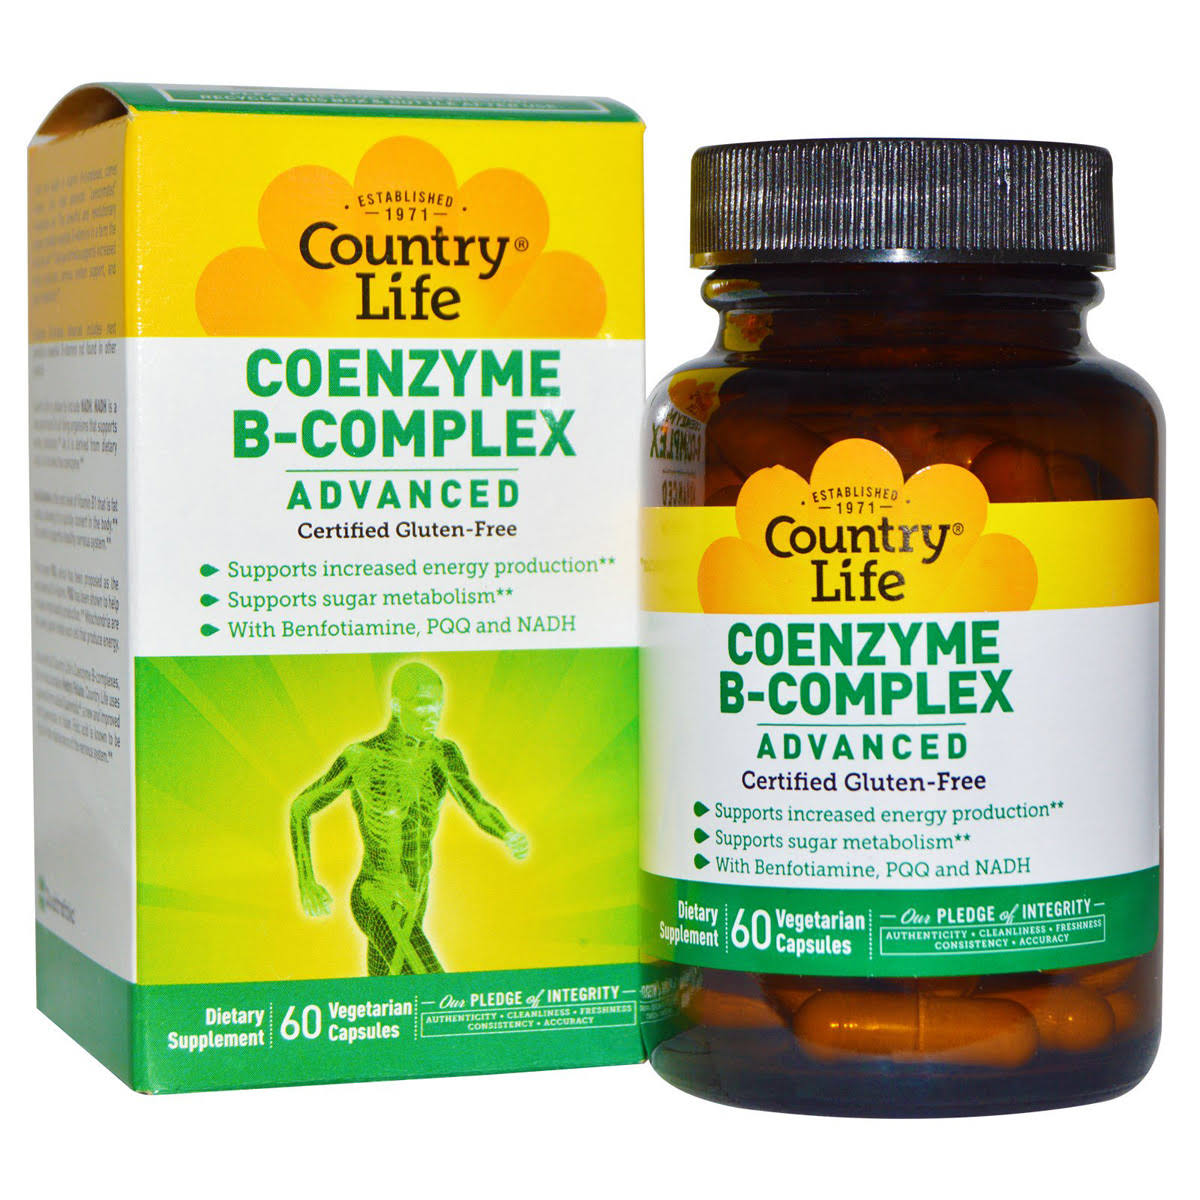 Country Life Coenzyme B Complx Advanced Capsules Supplement - 60 Count